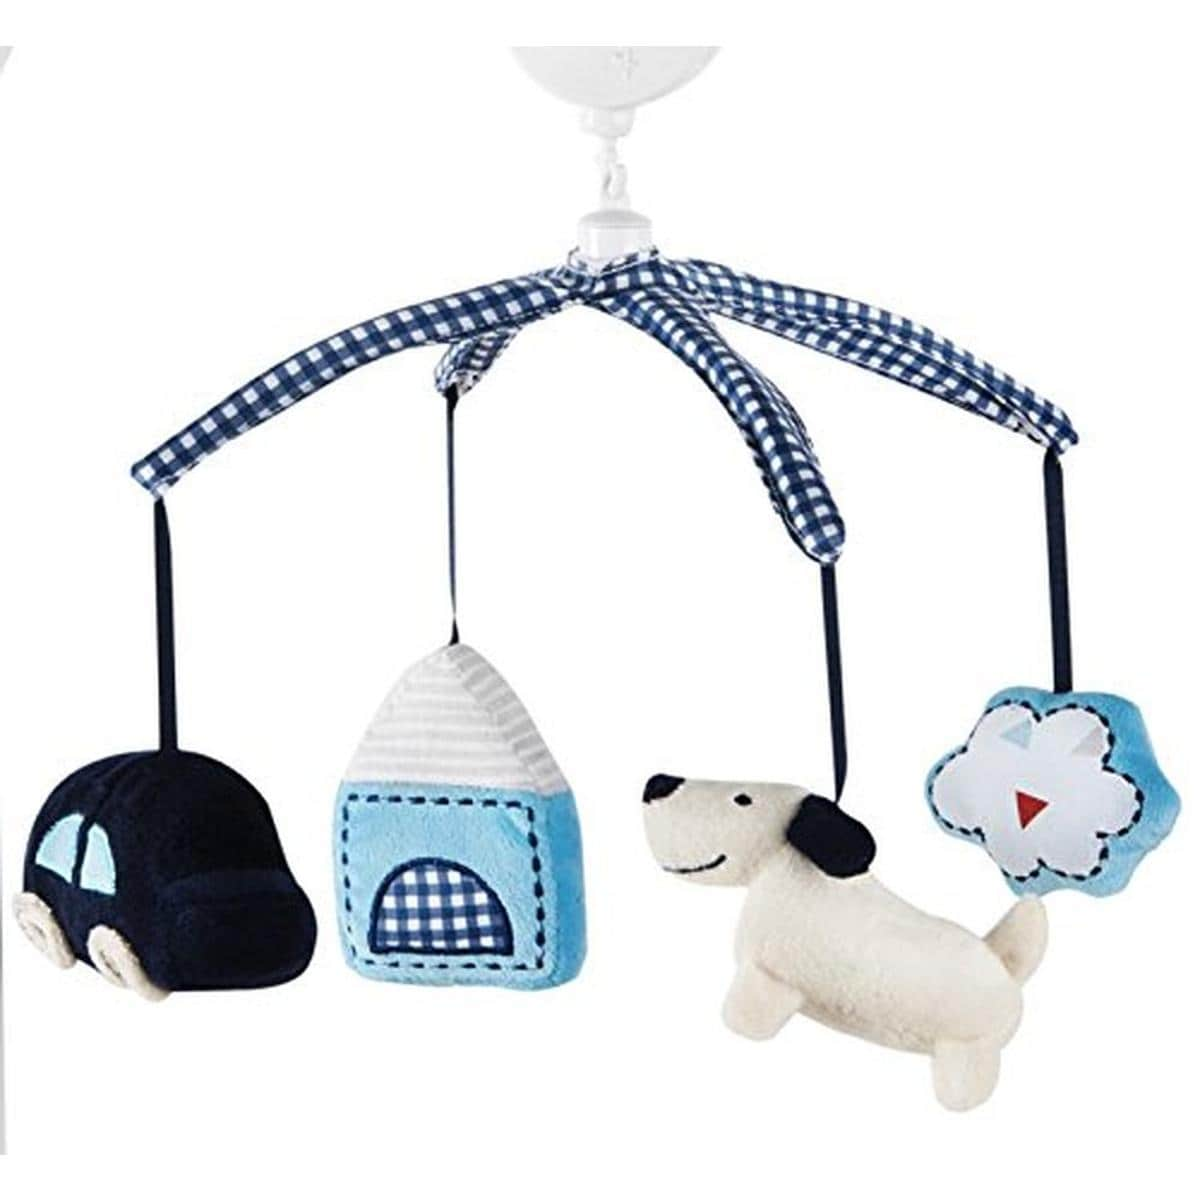 Baby Musical Mobile Crib Bell Toy Bed Holder Wind Up Arm Nursery Lambs Lullaby